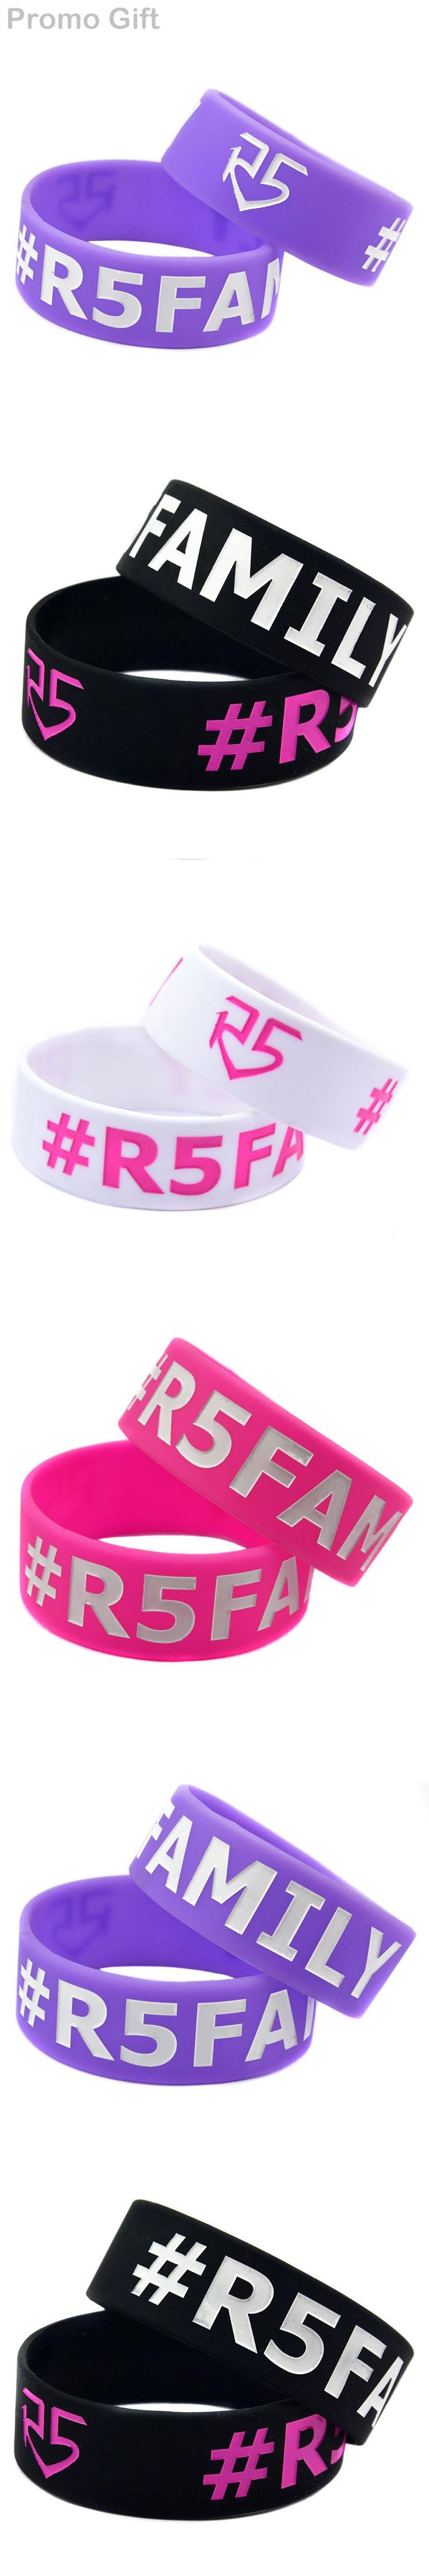 "Promo Gift 1PC 1"" Wide Band R5 Family Rock Band Bracelet Silicone Wristband for Fans"